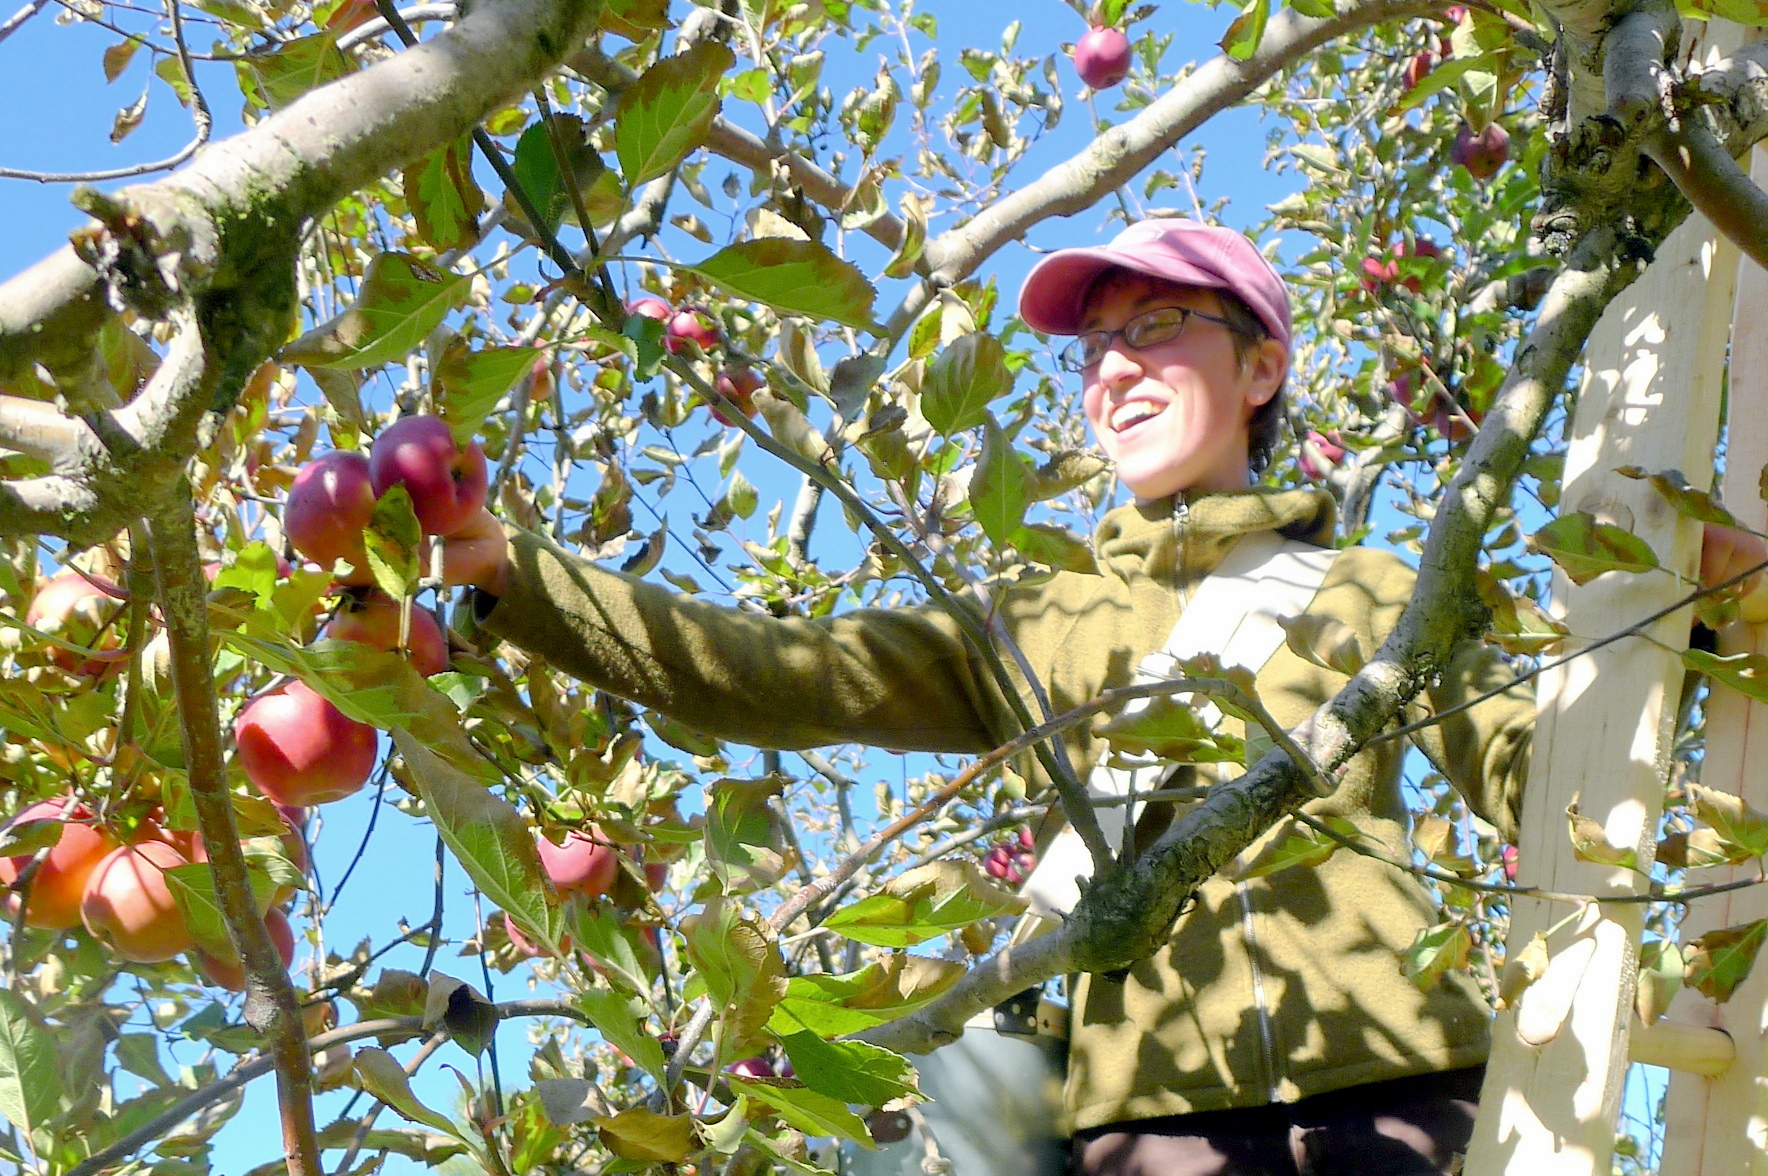 Abbey picking Rome apples.